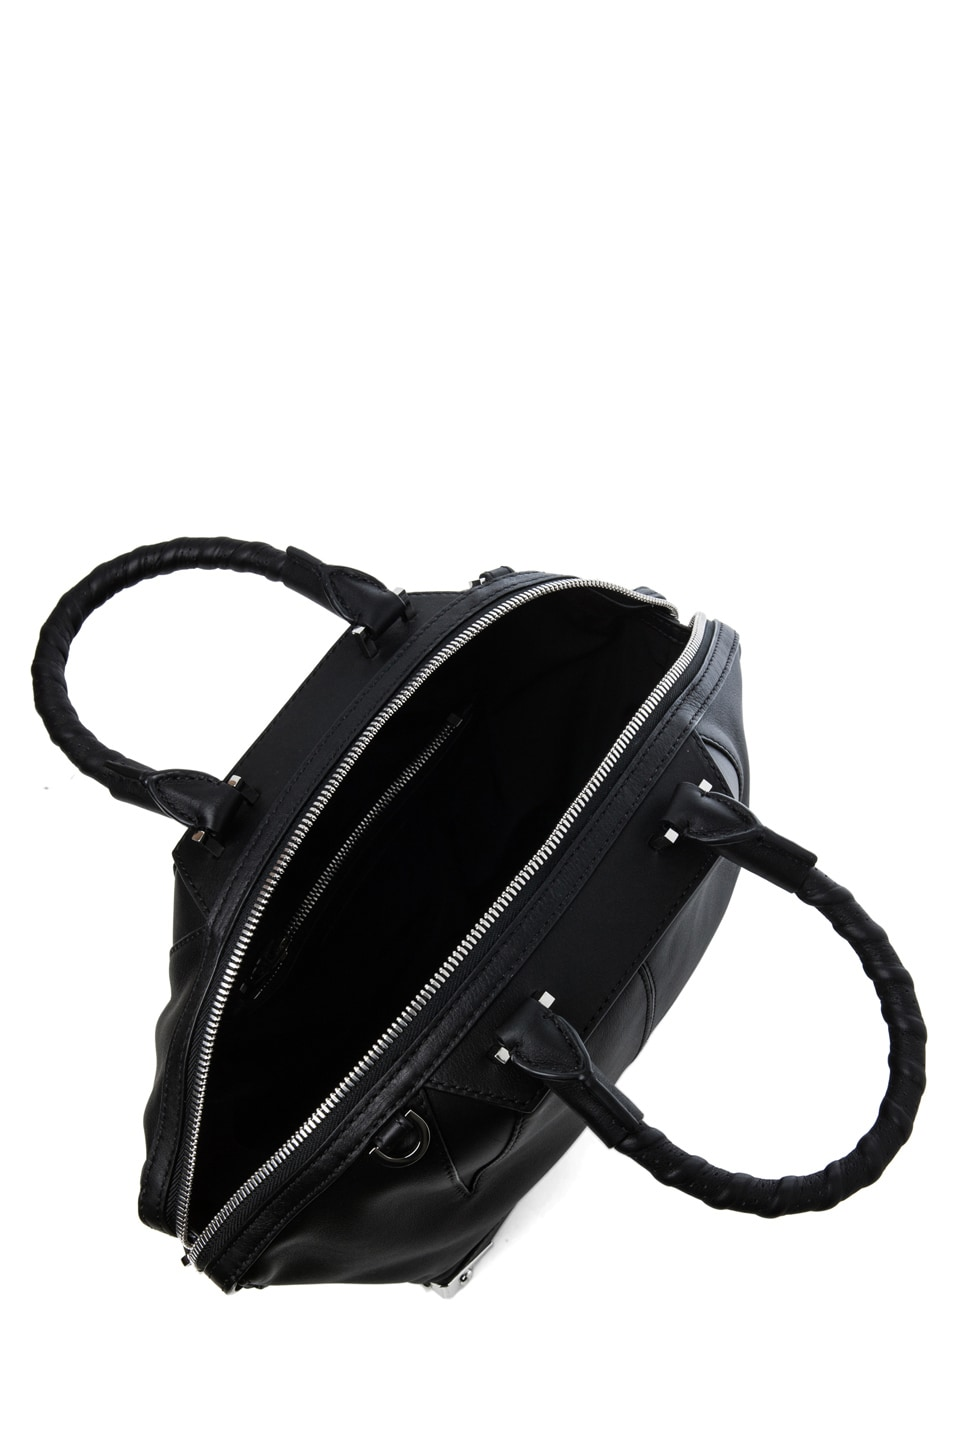 Image 4 of Alexander Wang Small Emilie Satchel with Bike Handle in Black